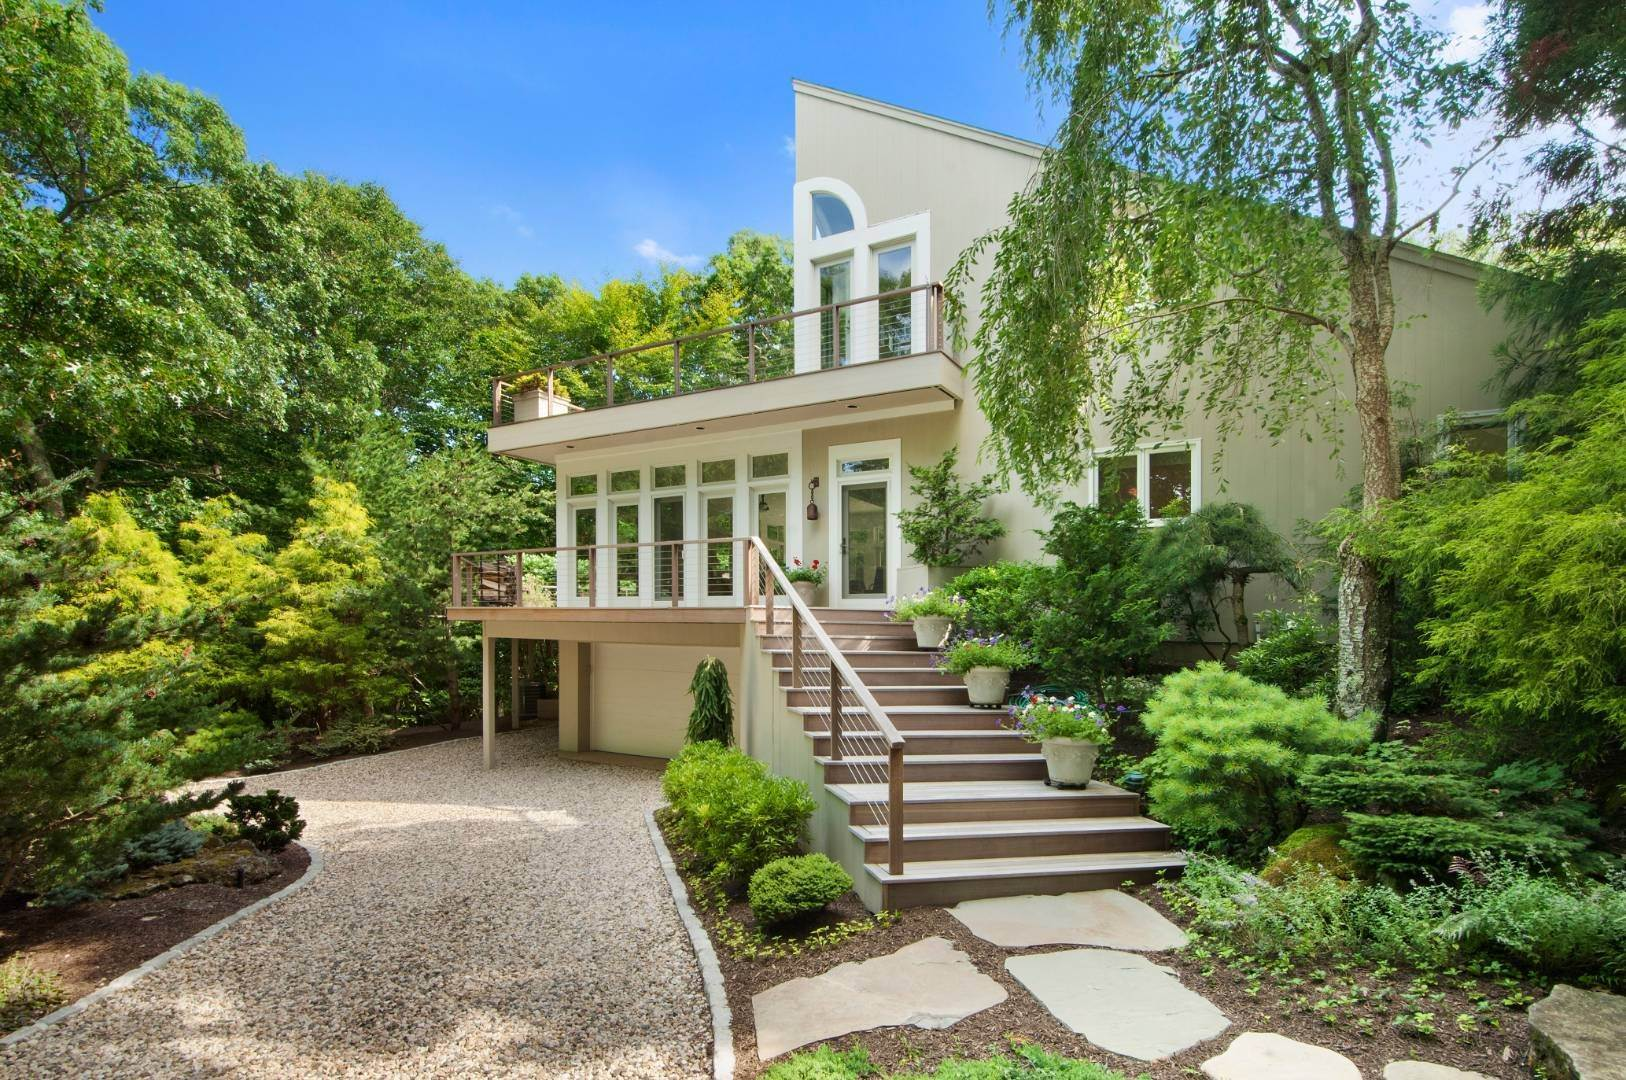 Single Family Home for Sale at Amagansett Bell Estate Contemporary 19 Bell Place, Amagansett, NY 11930